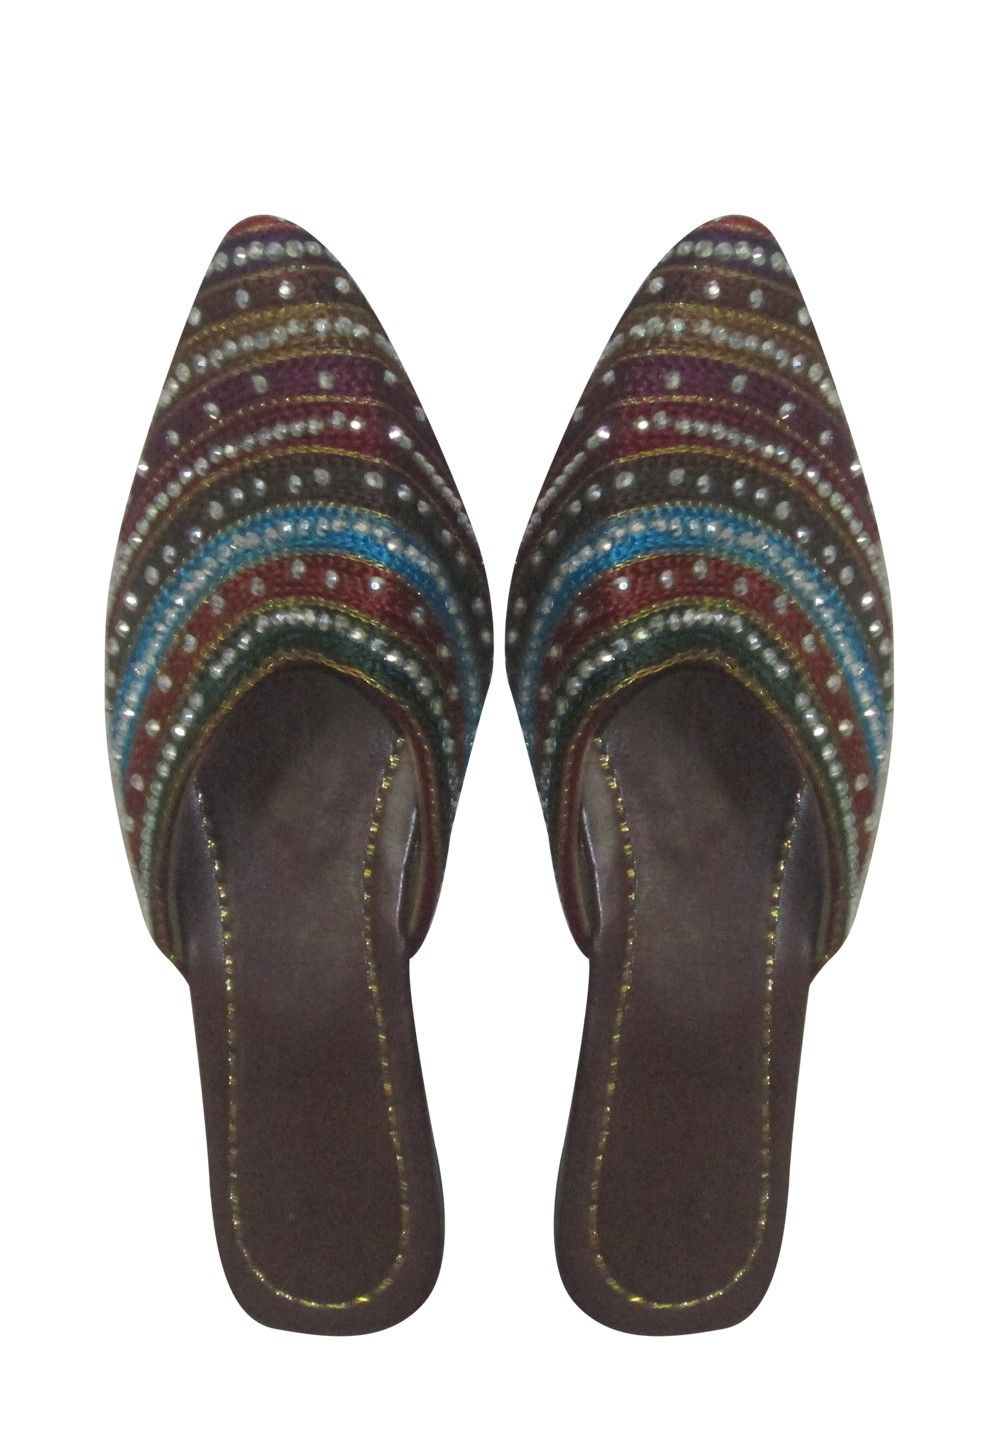 Embroidered Leather Sandal in Maroon